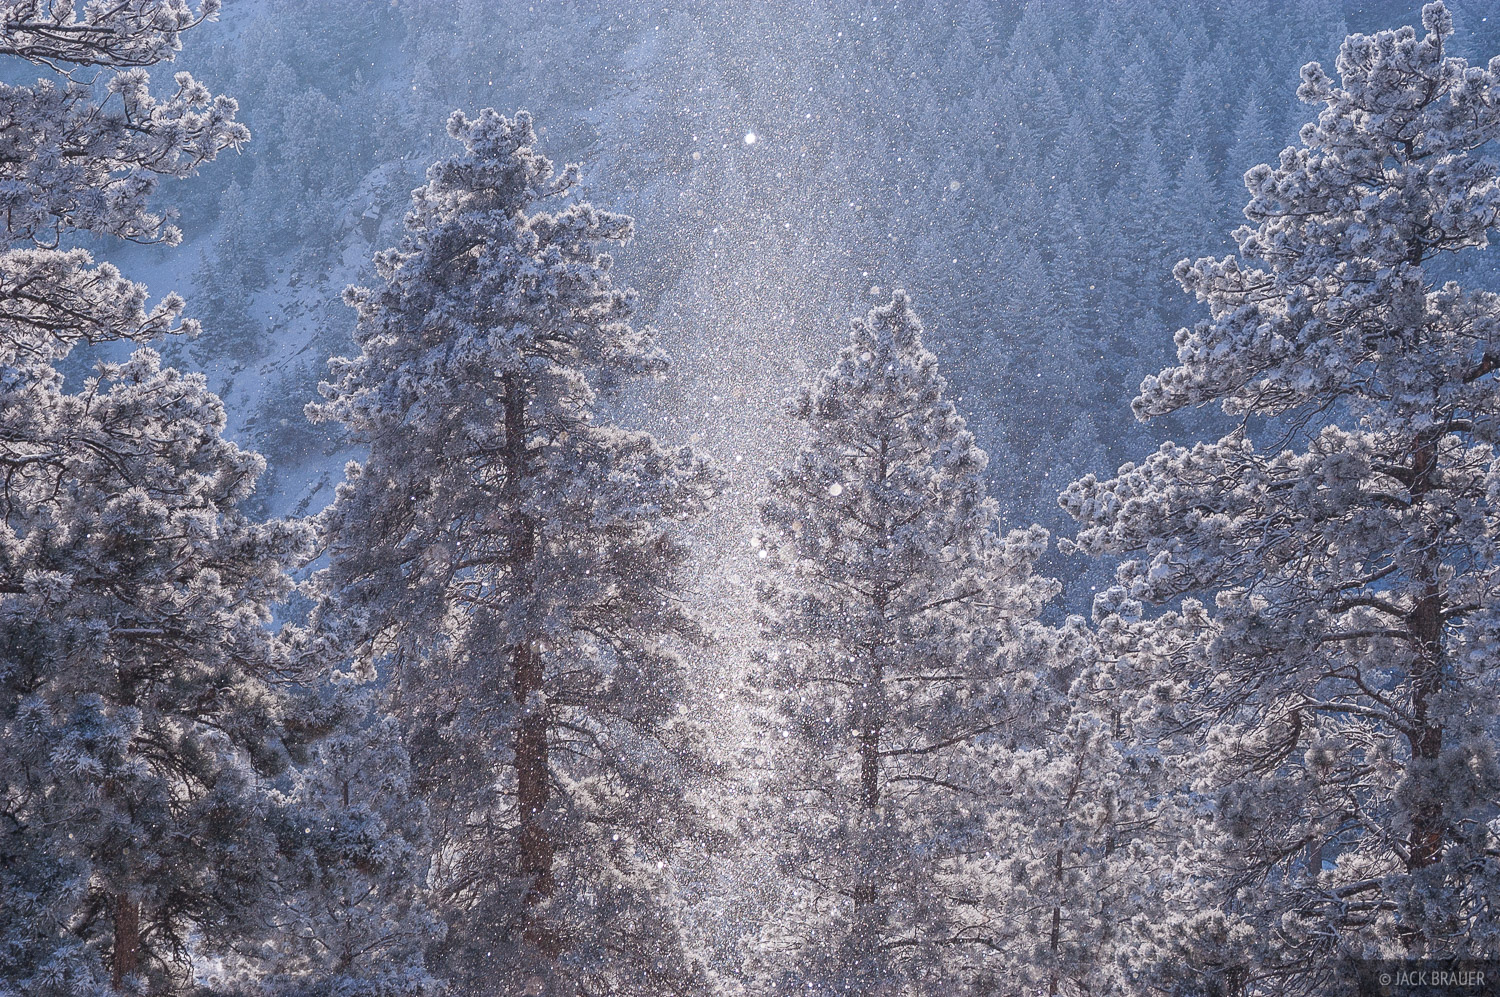 Boulder, Colorado, ice, crystals, winter, photo